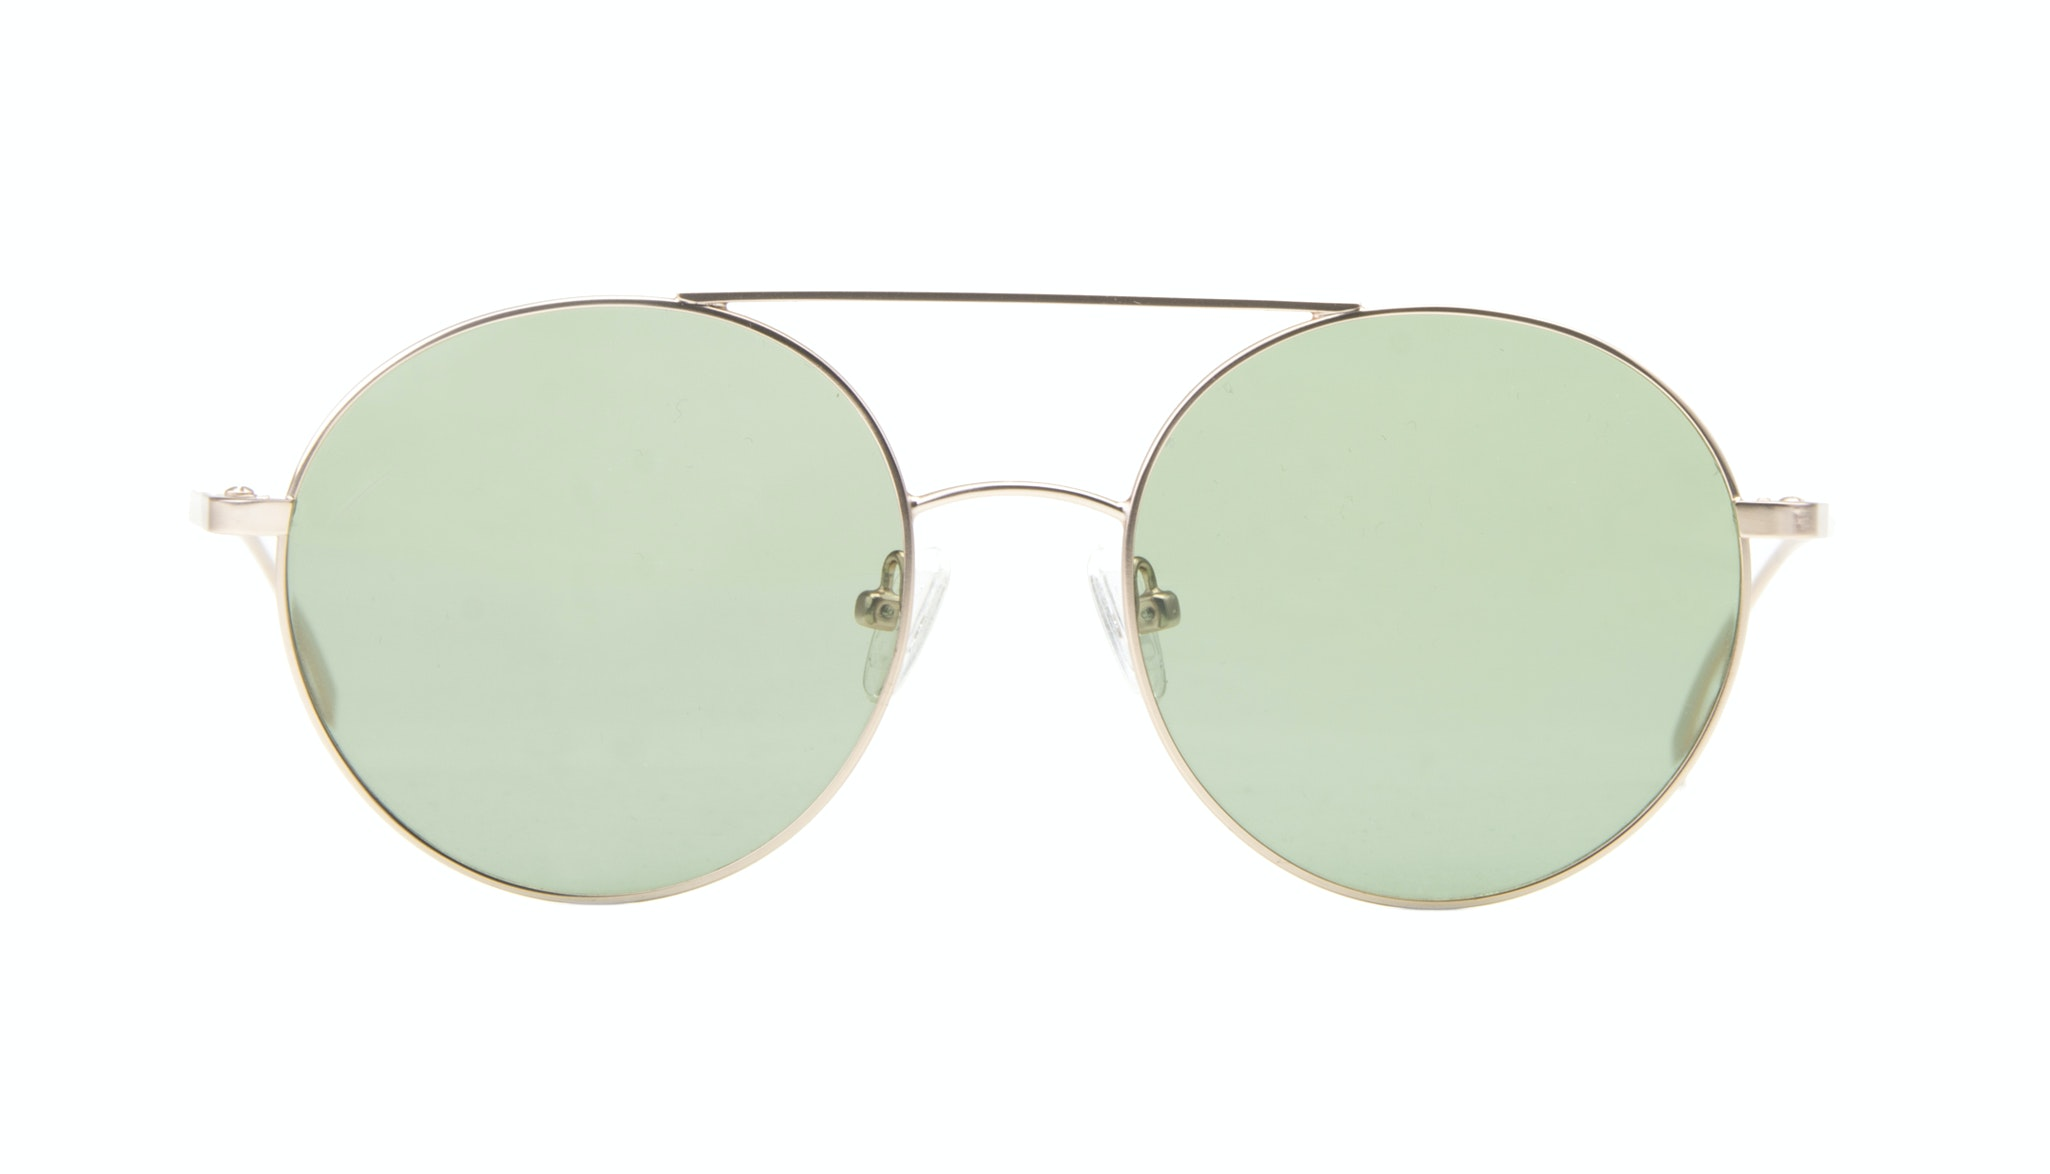 Lunettes tendance Aviator Ronde Solaires Femmes Baby Money